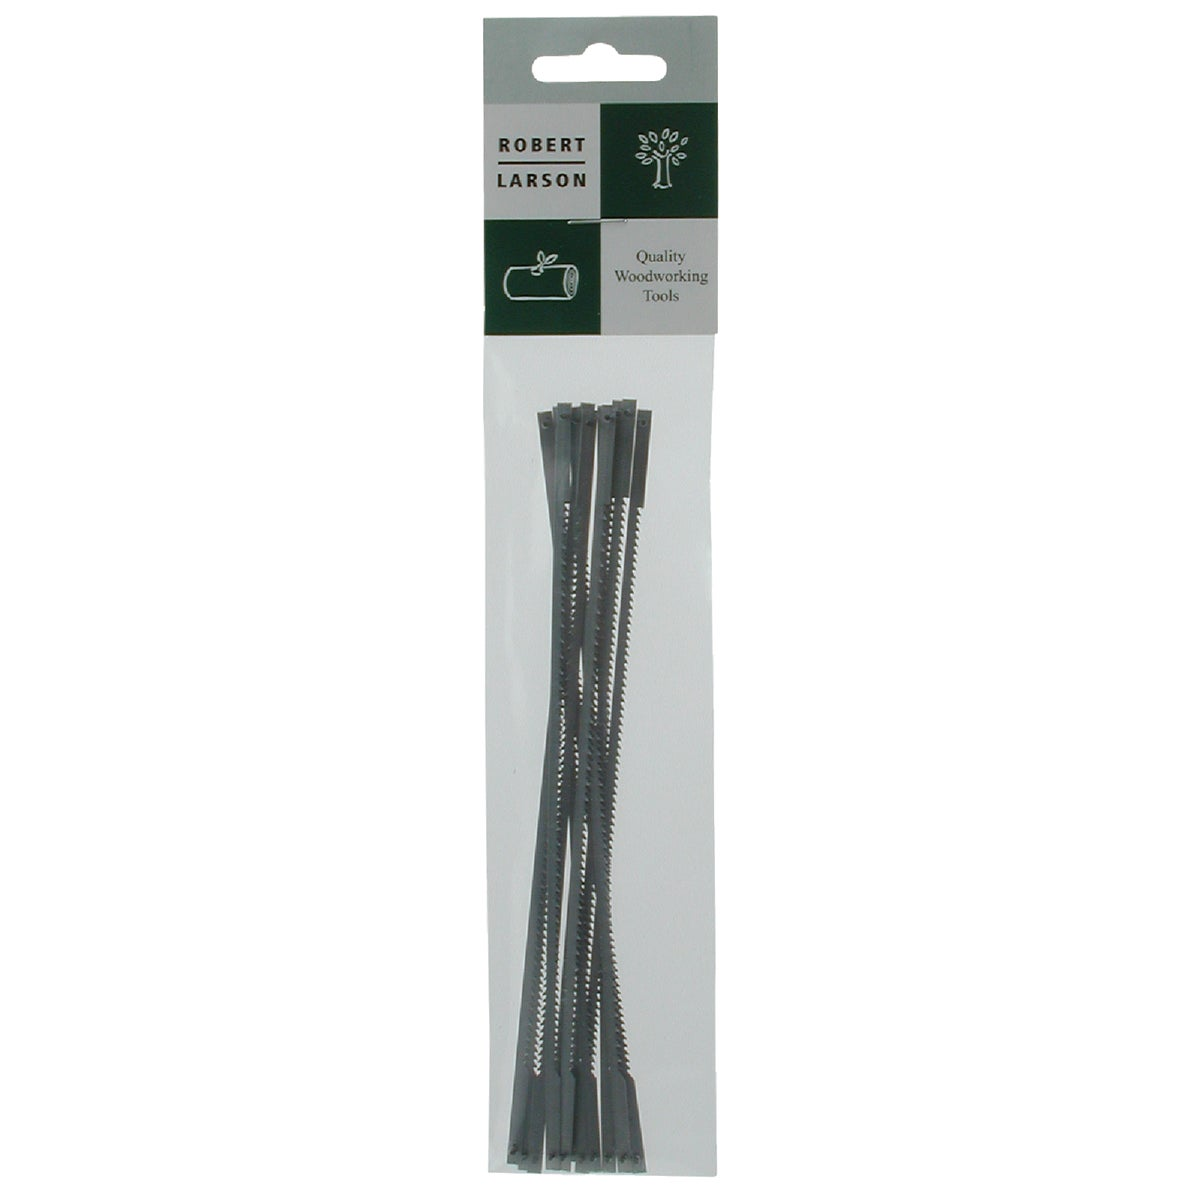 12PC COPING SAW BLADES - 540-7500 by Robert Larson